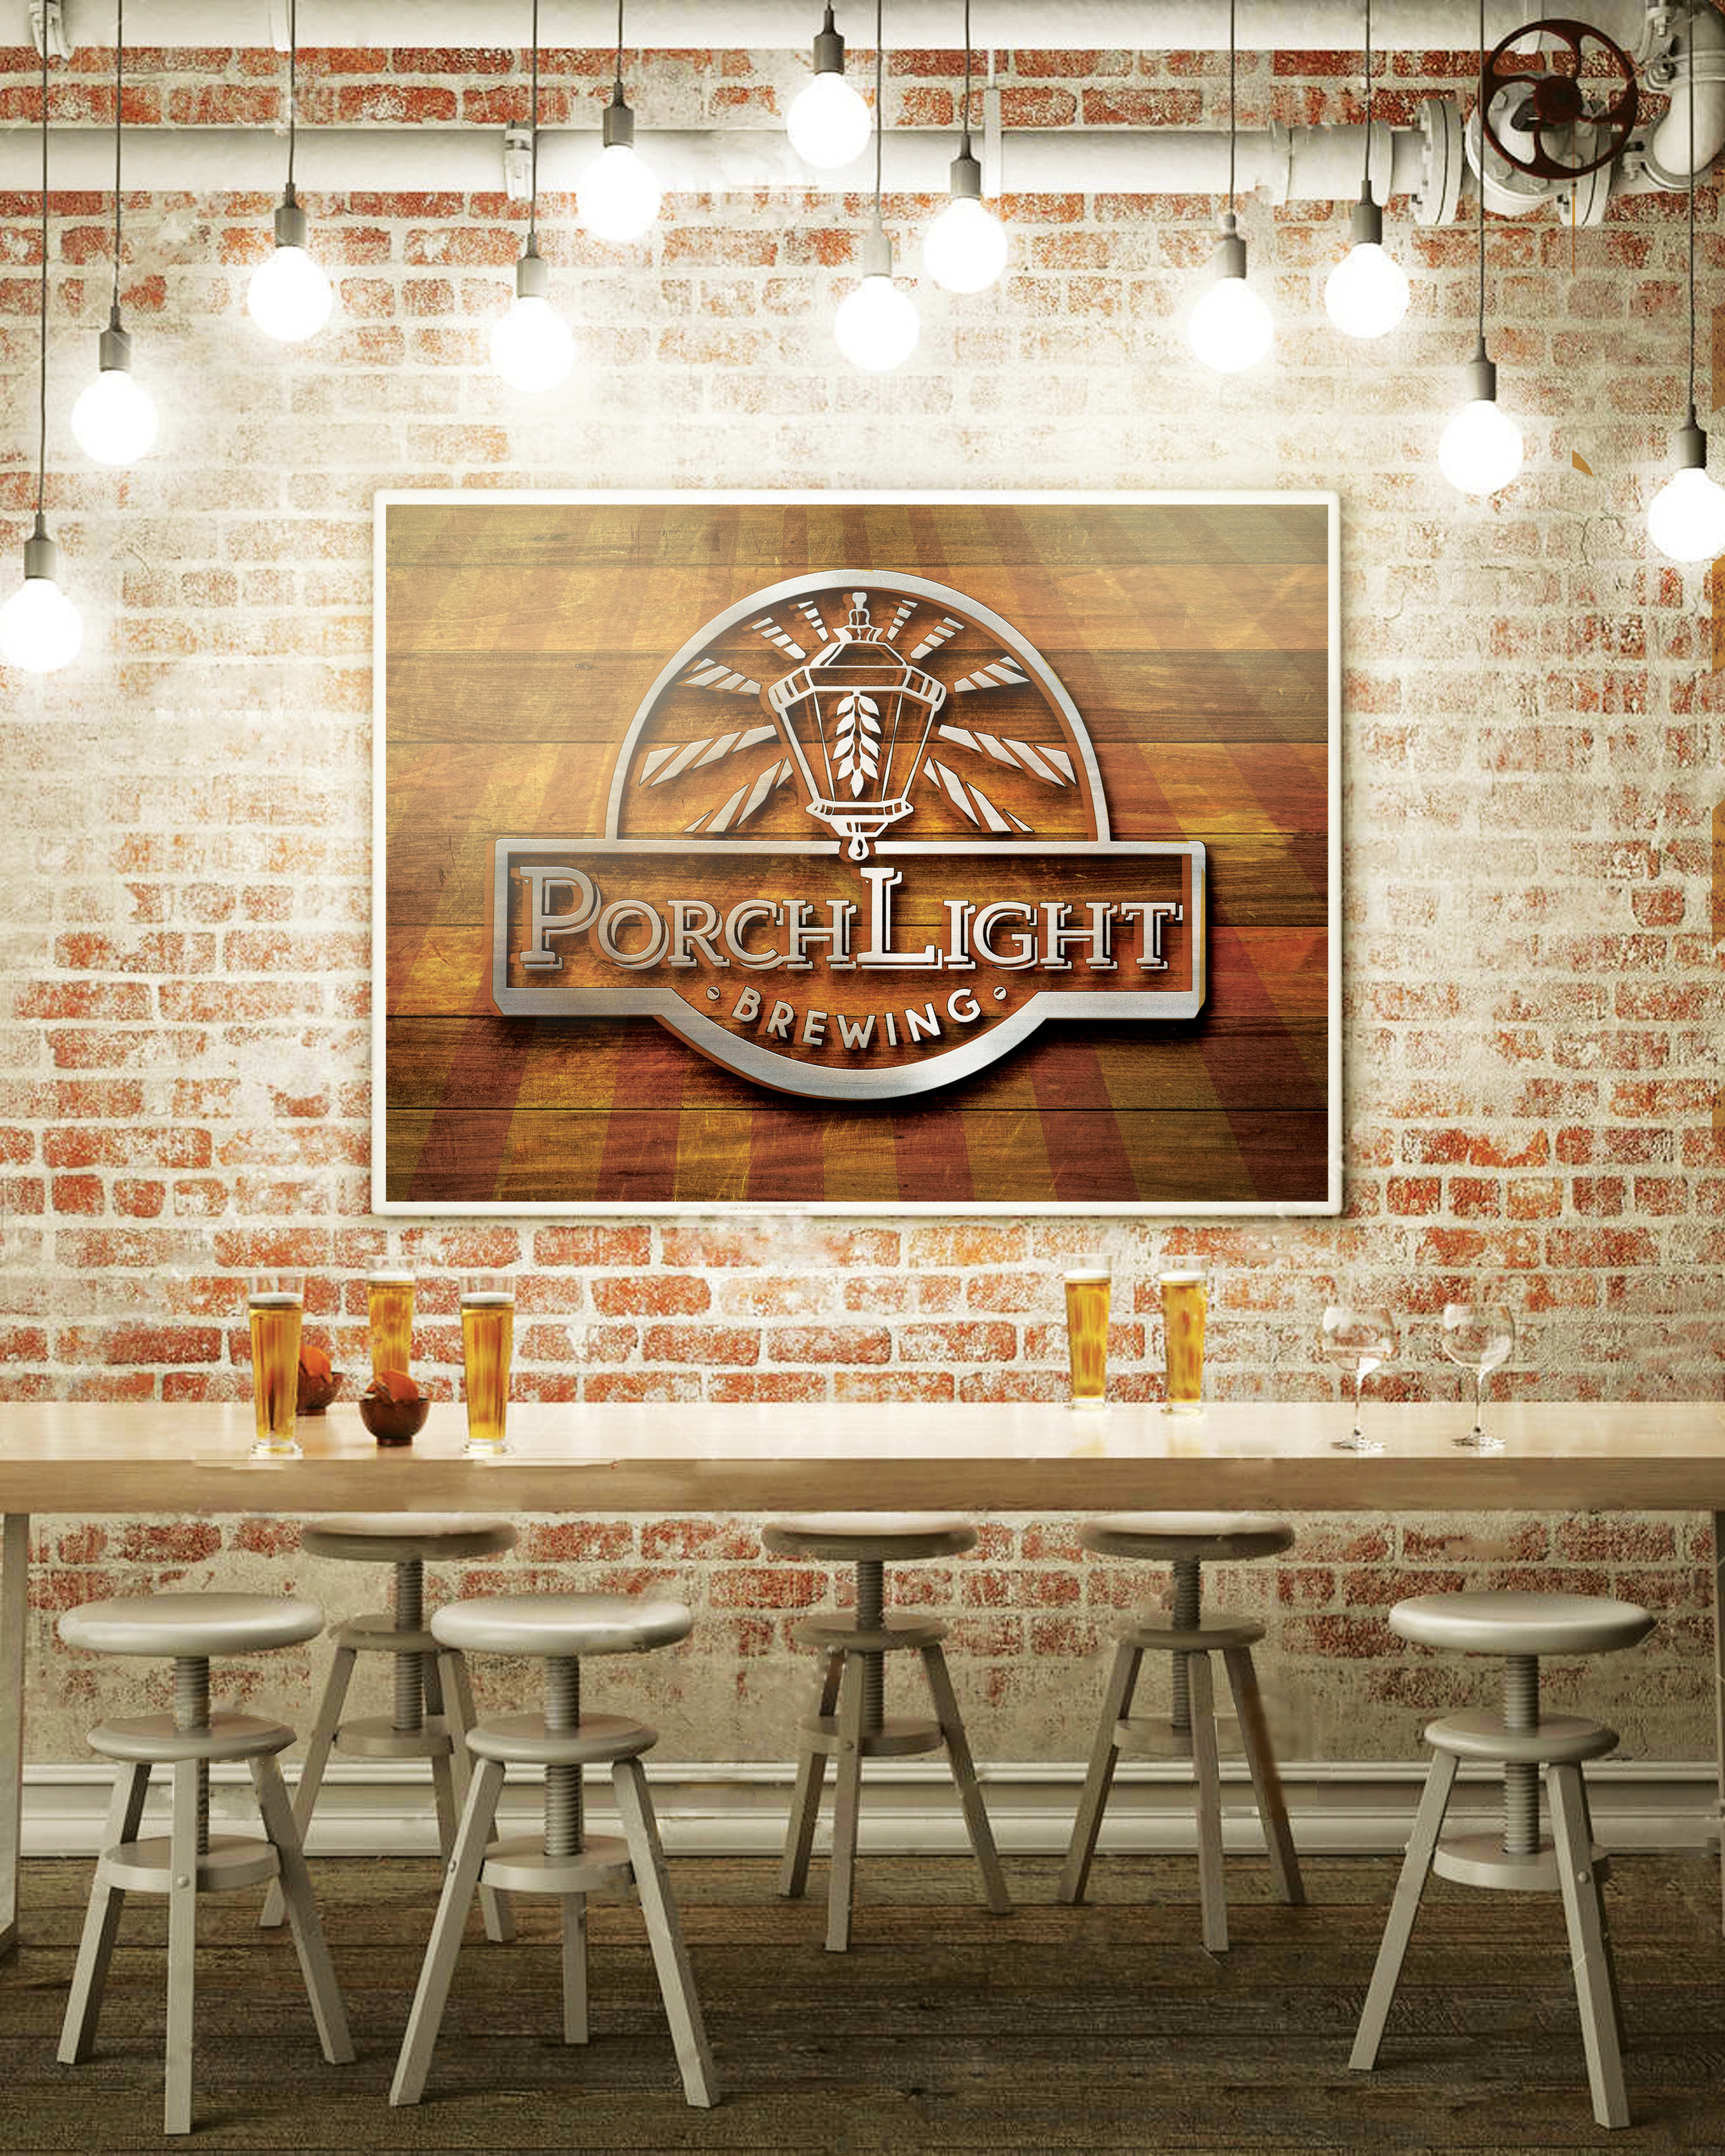 PorchLight Brewing Co. Wall Signage Design